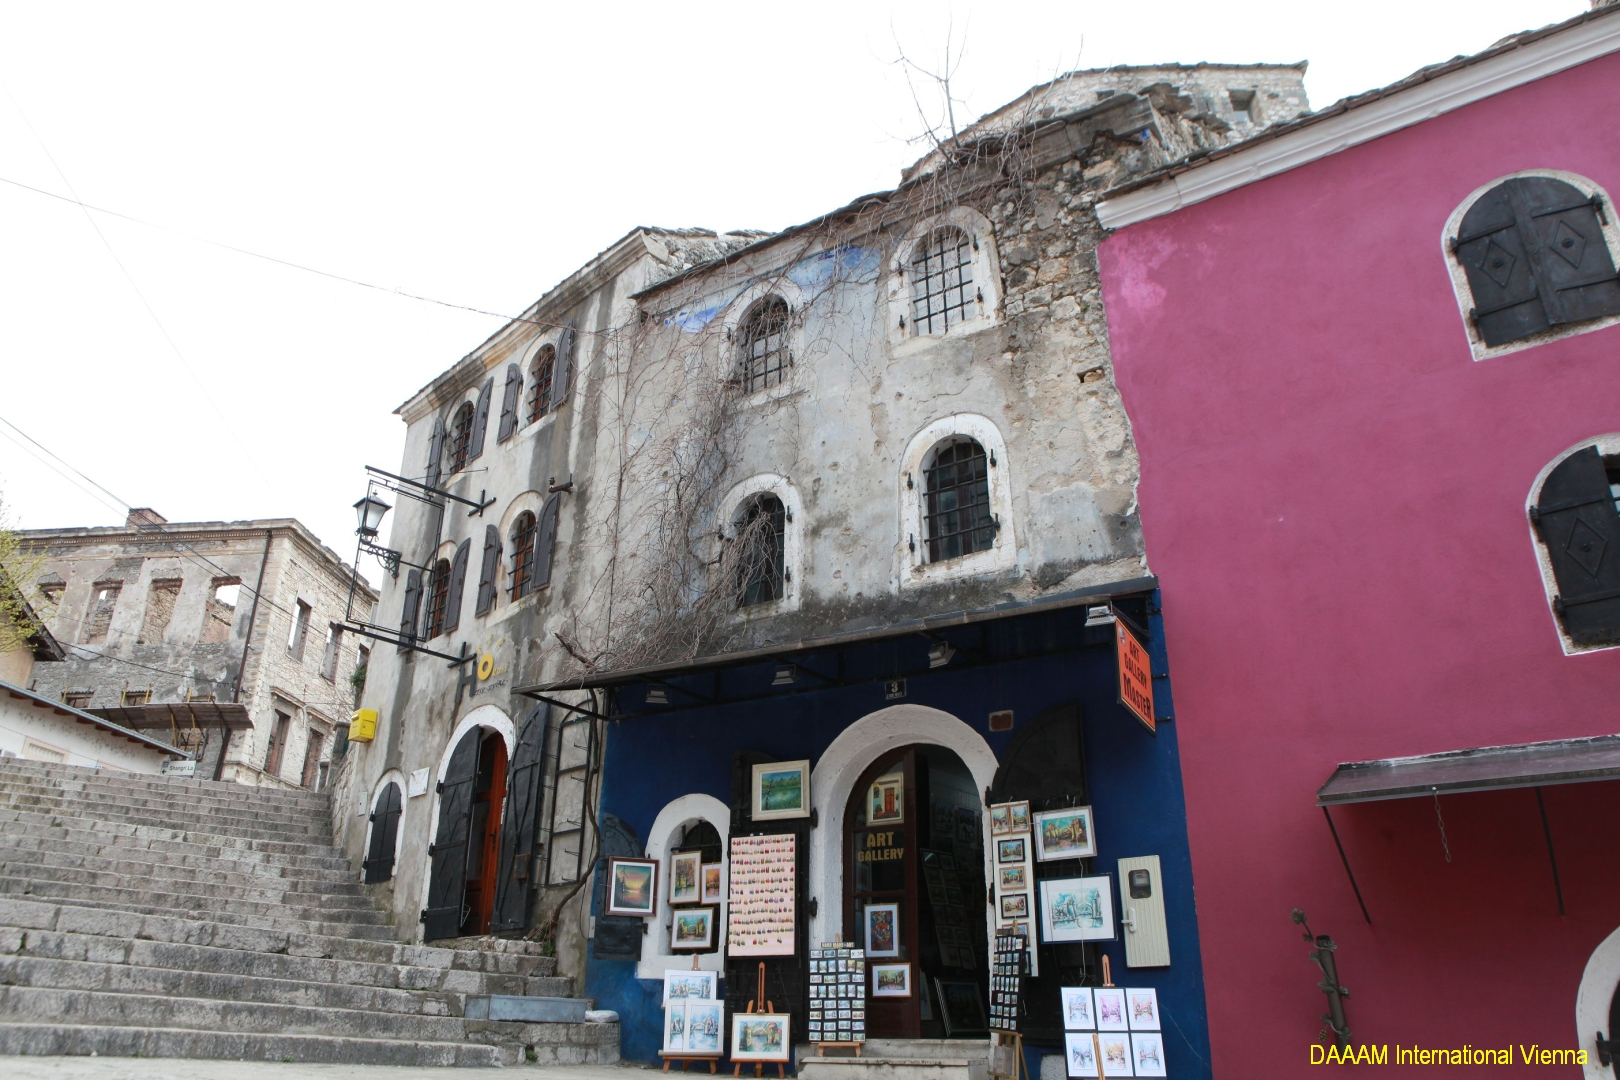 DAAAM_2016_Mostar_01_Magic_City_of_Mostar_164